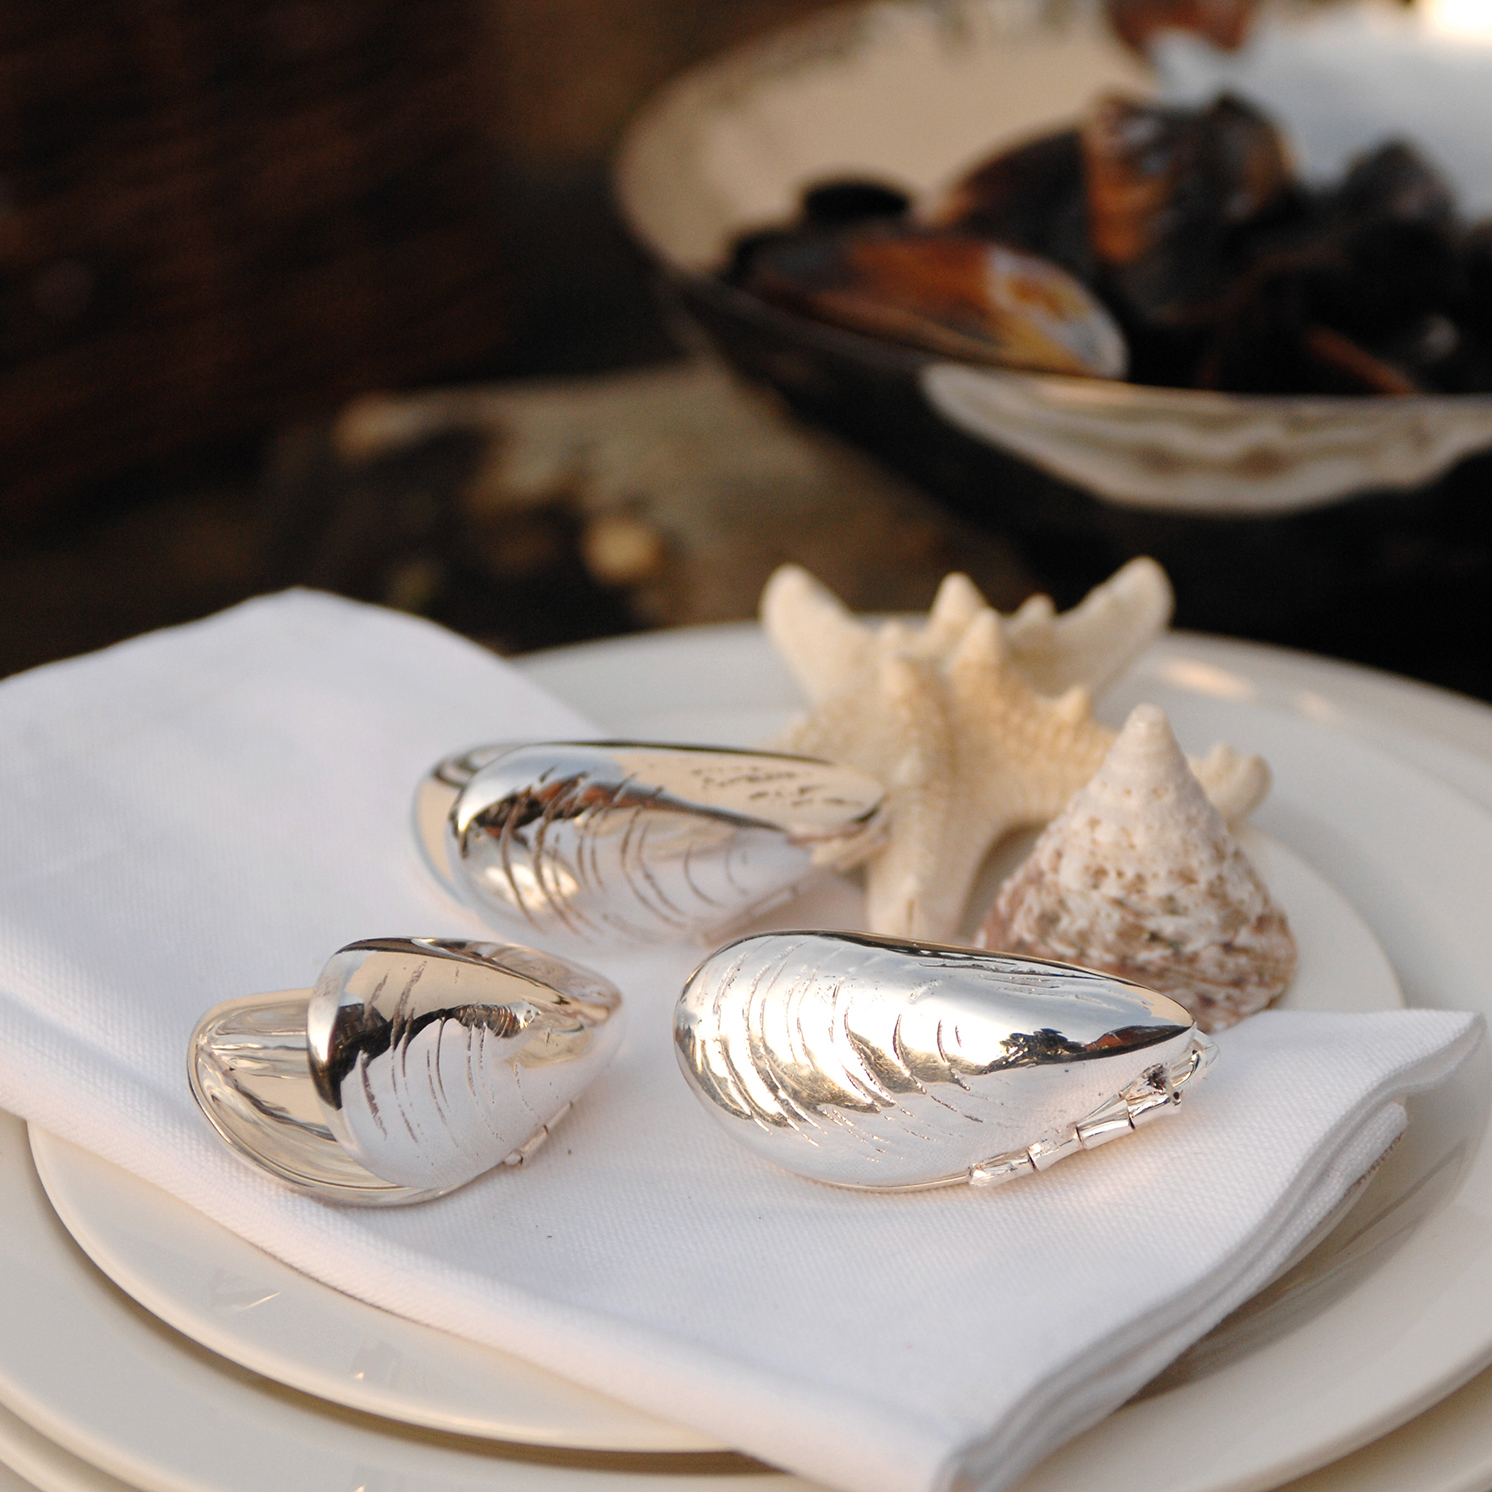 Culinary Concepts – Pair of Silver Plated Mussel Eaters in Presentation Gift Box